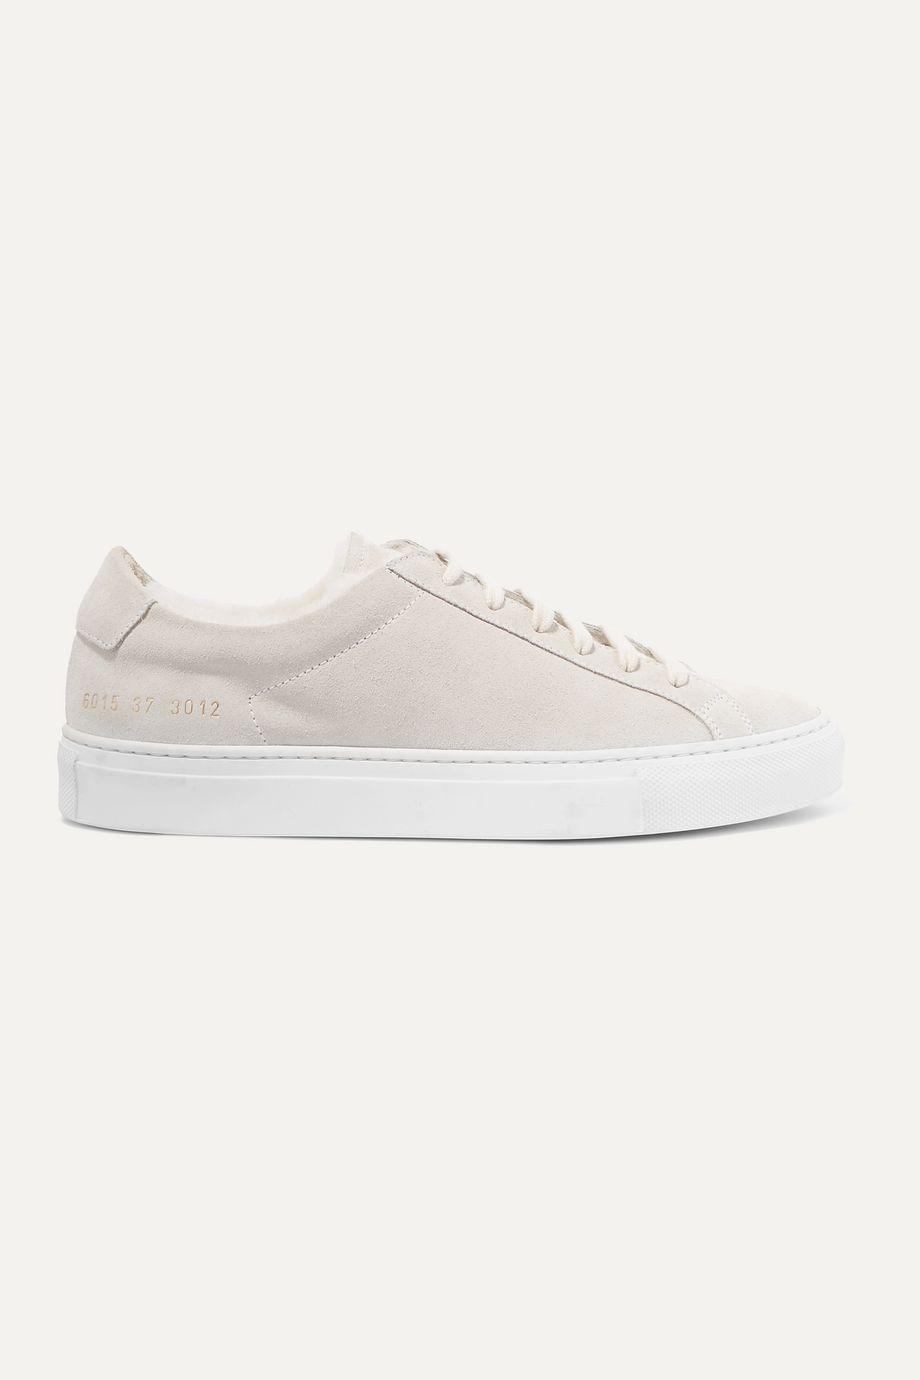 Retro Low shearling-lined suede sneakers by COMMON PROJECTS, available on net-a-porter.com for $282 Alessandra Ambrosio Shoes Exact Product